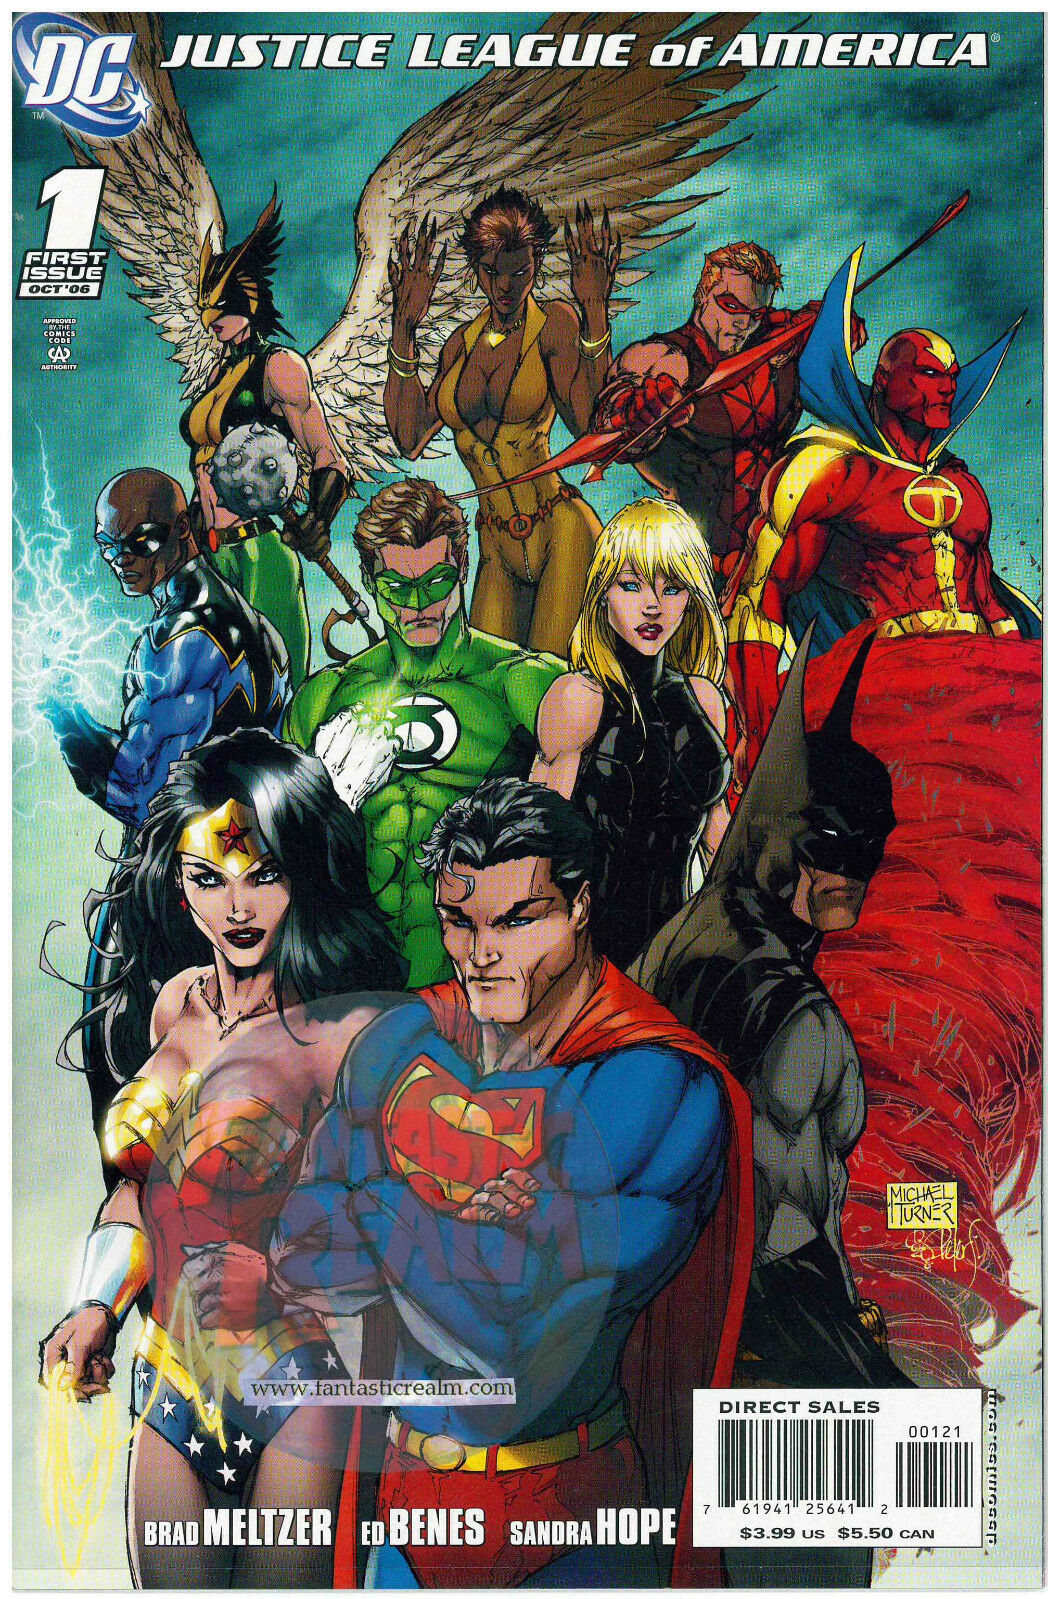 JUSTICE LEAGUE OF AMERICA #1 & SKETCH VARIANT MICHAEL TURNER VARIANT DC COMICS